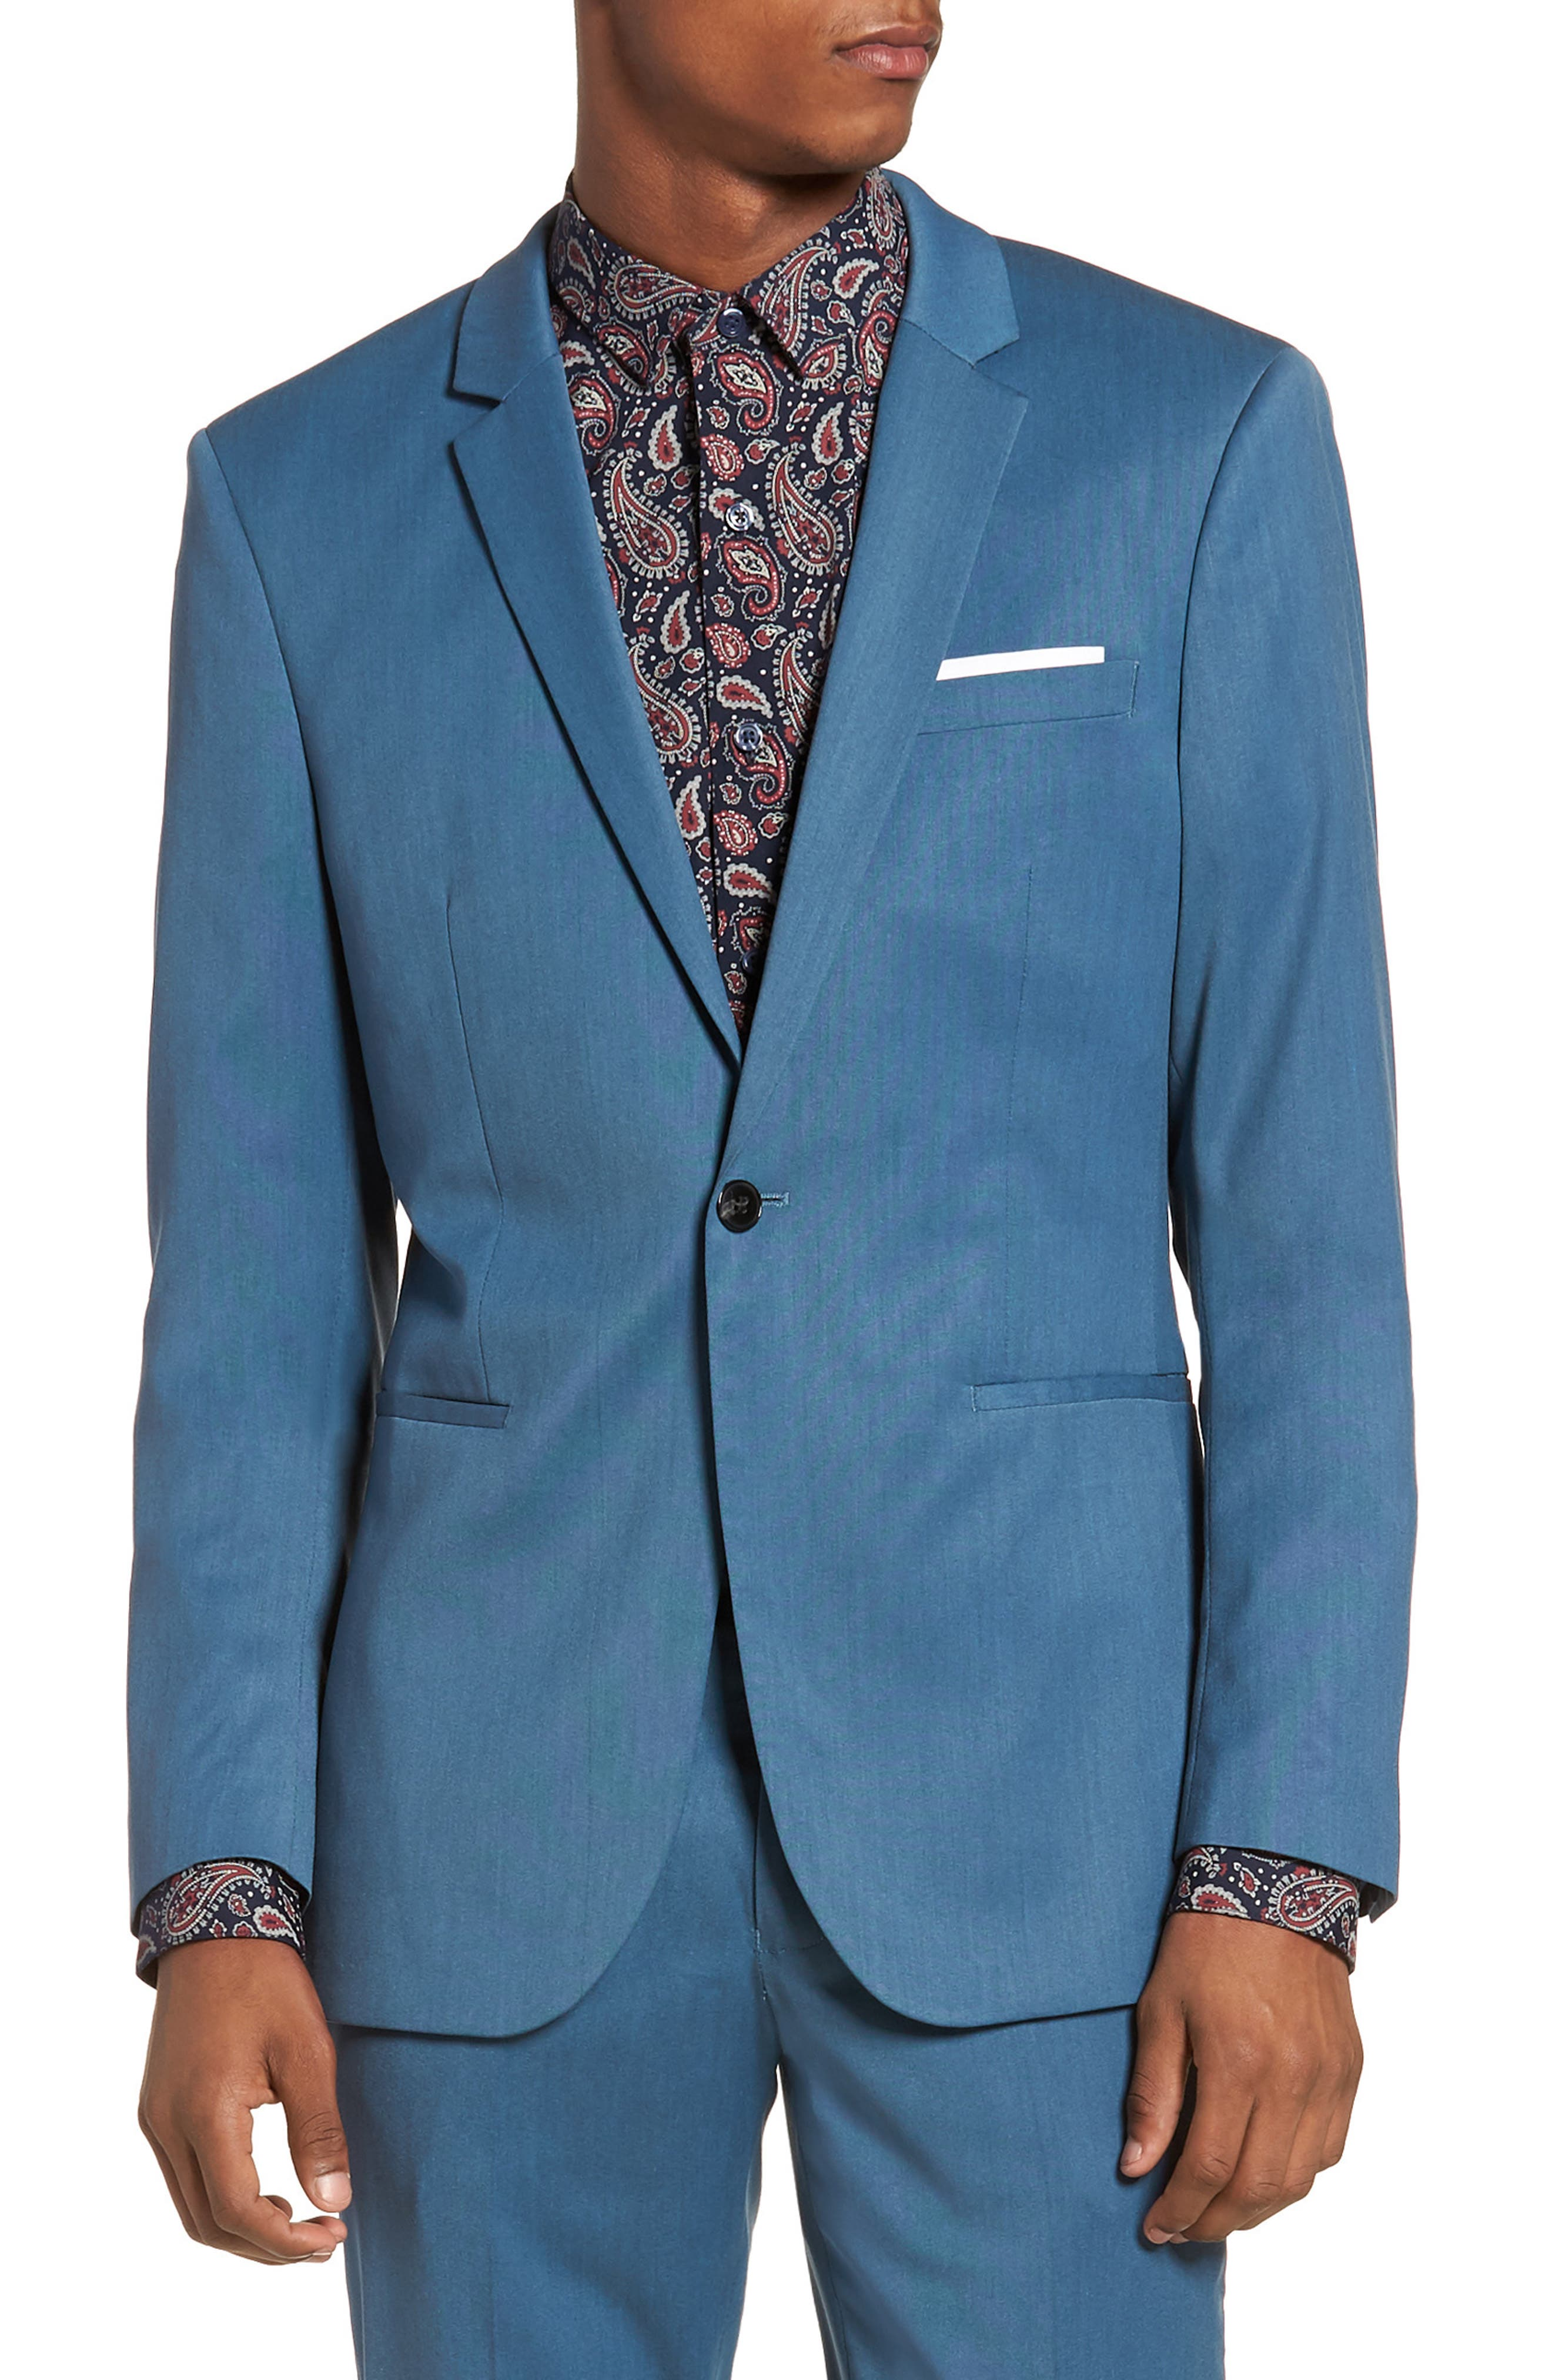 Skinny Fit Suit Jacket,                             Main thumbnail 1, color,                             450